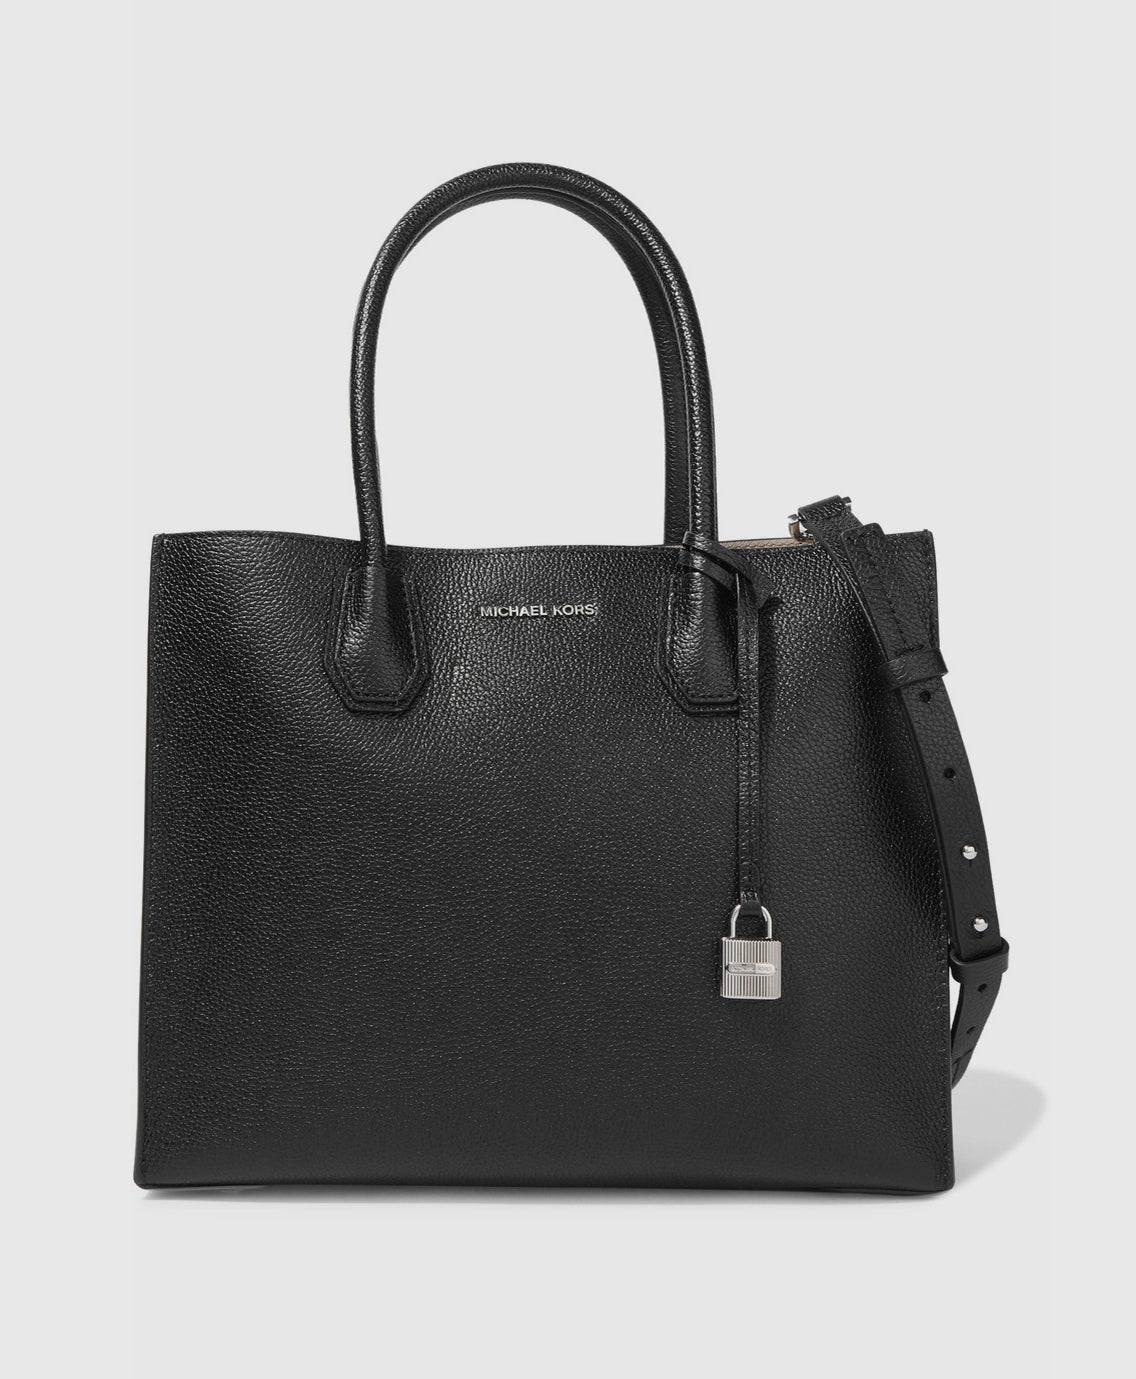 Mercer large textured leather tote